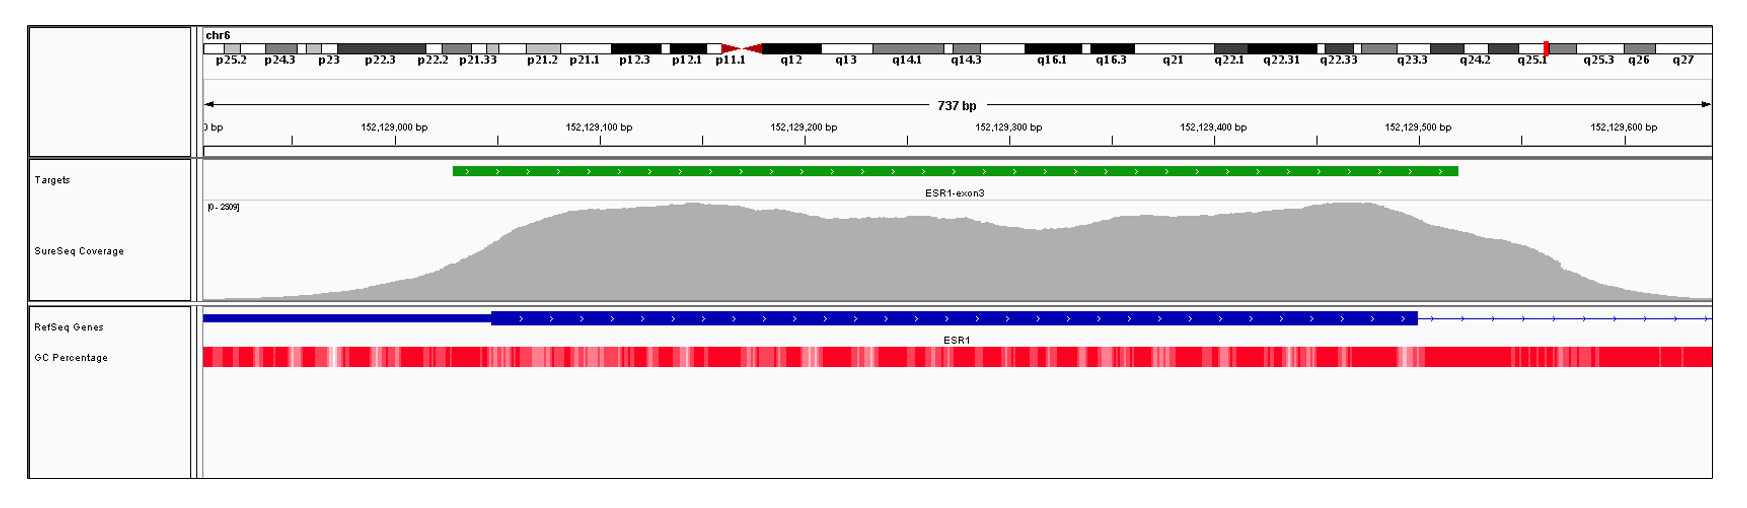 ESR1 Exon 3 (hg19 chr6:152128978-152129499). Depth of coverage per base (grey). Targeted region (green). Gene coding region as defined by RefSeq (blue). GC percentage (red). Image